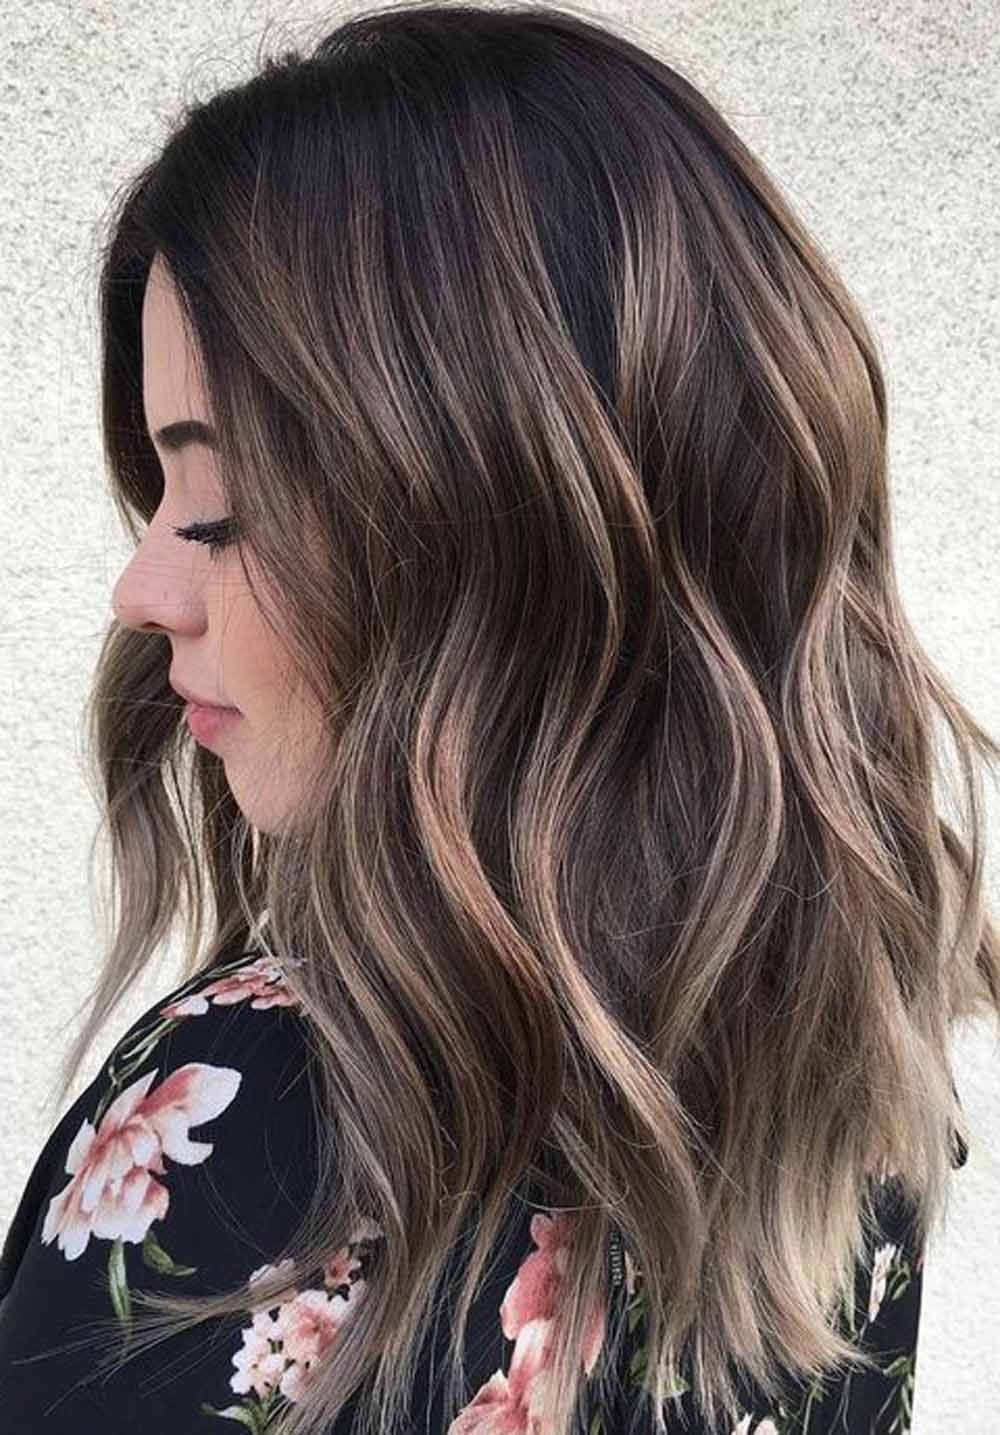 30 Best Trend Of Summer Hair Color Ideas For Brunettes In 2020 Hair Highlights Brown Hair Makeover Beautiful Hair